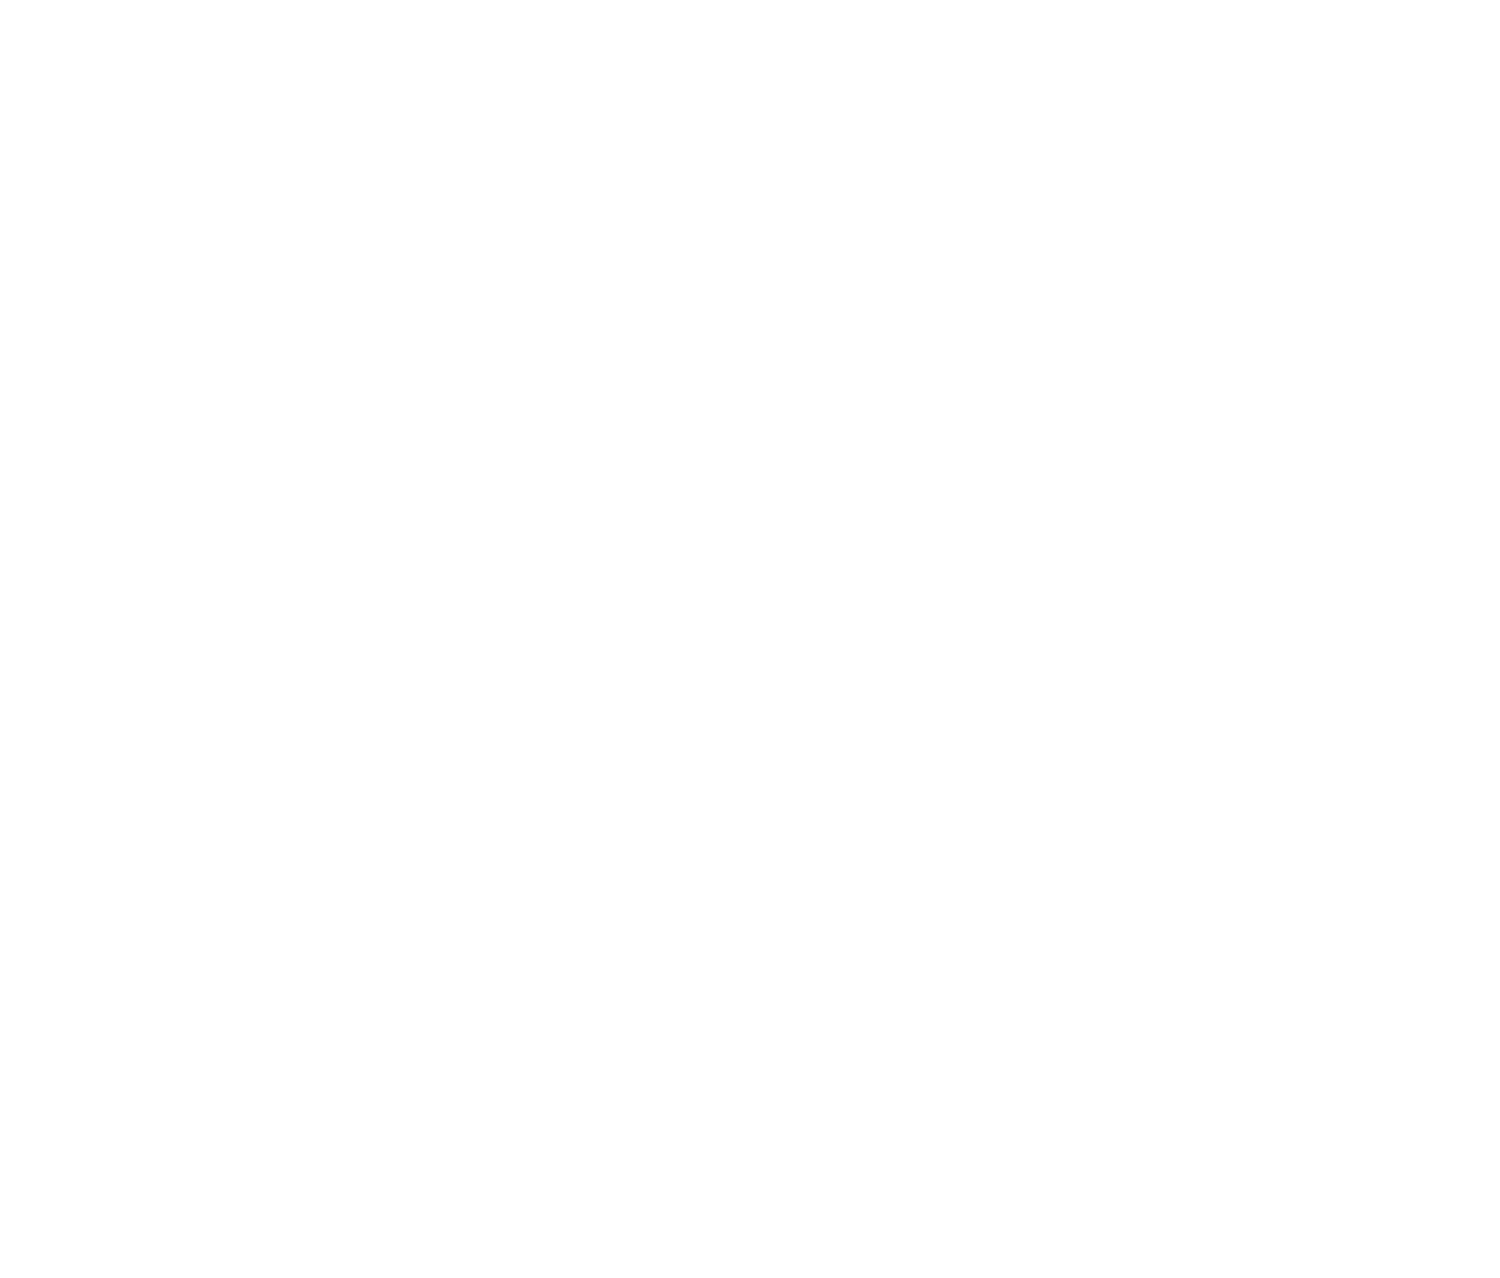 Celebrate 16 Days of Sauvignon Blanc